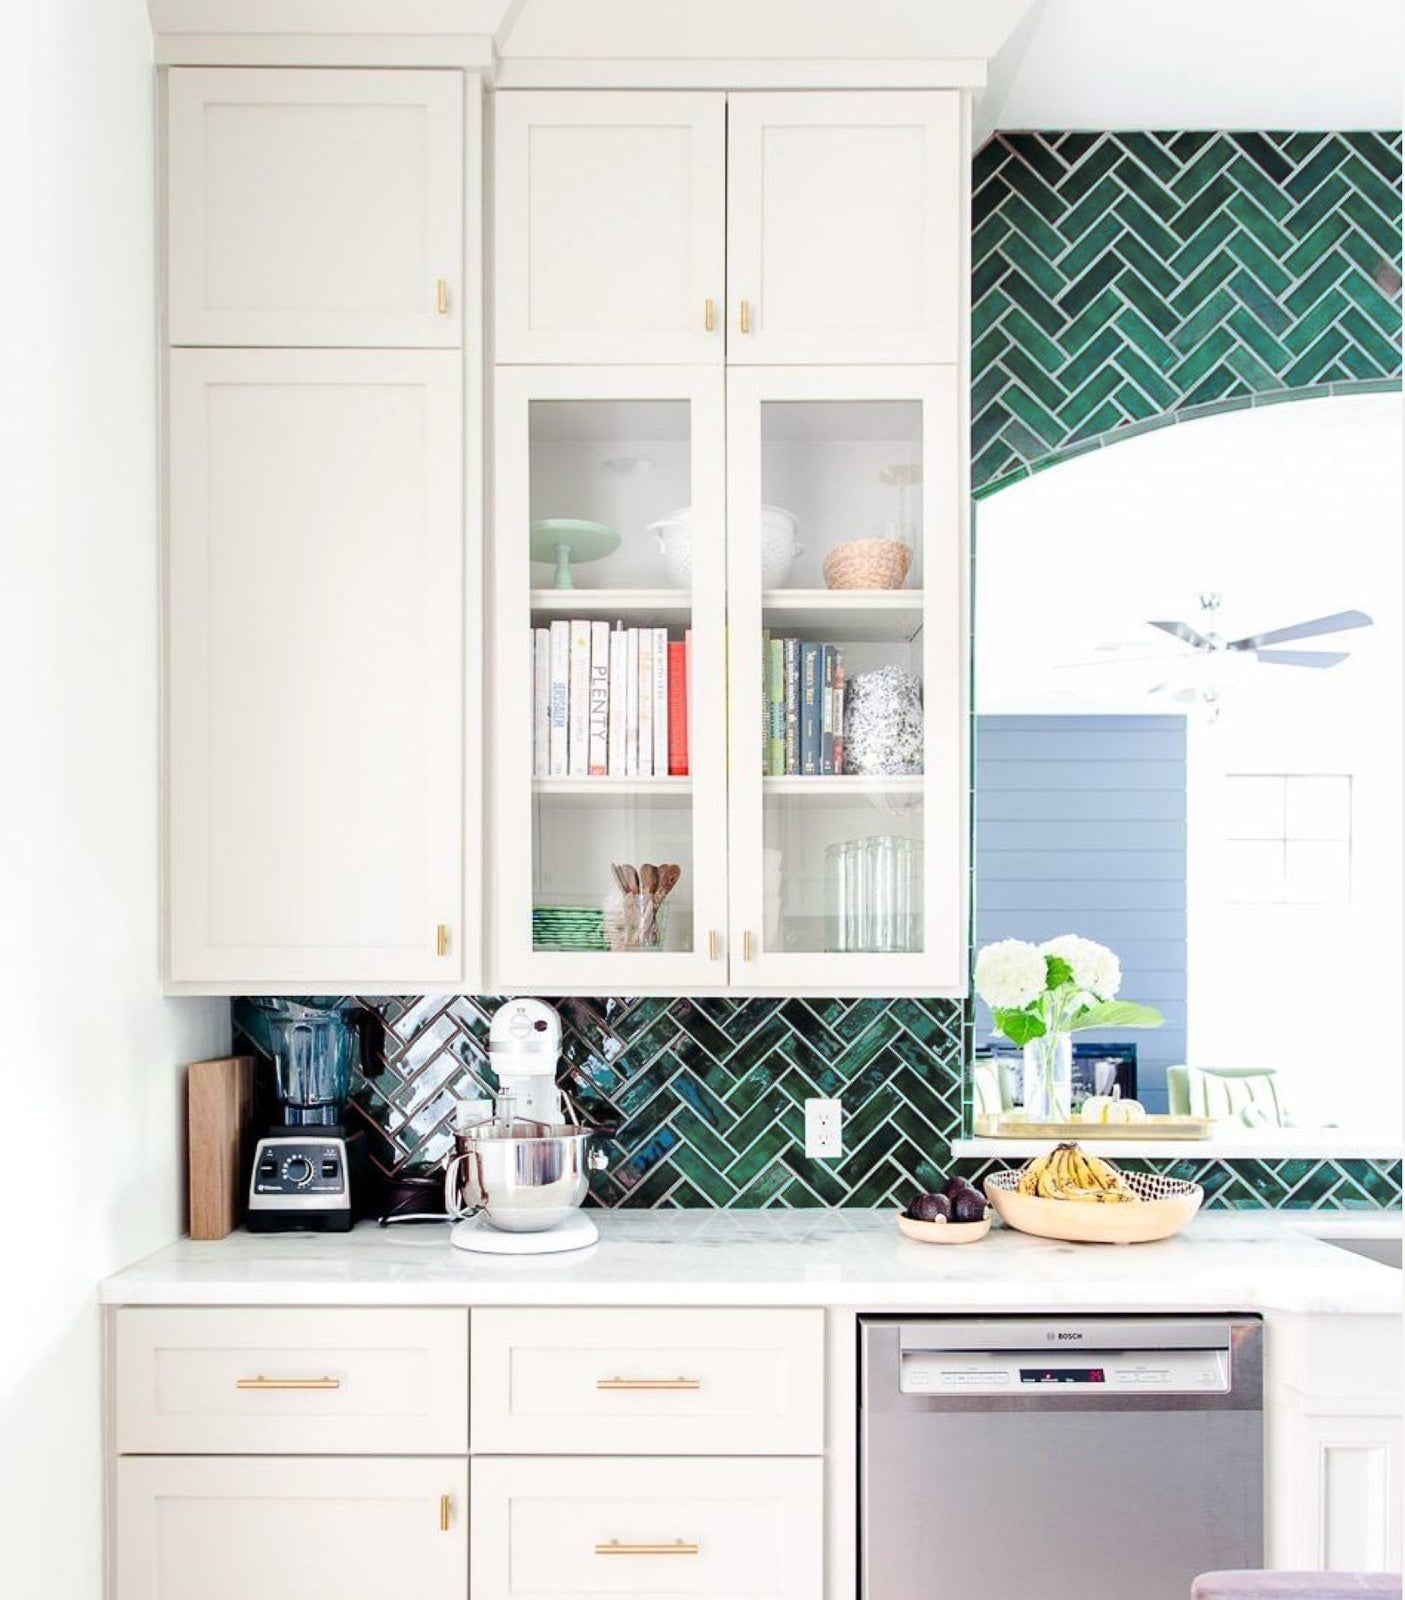 Classic Kitchen Tile Design